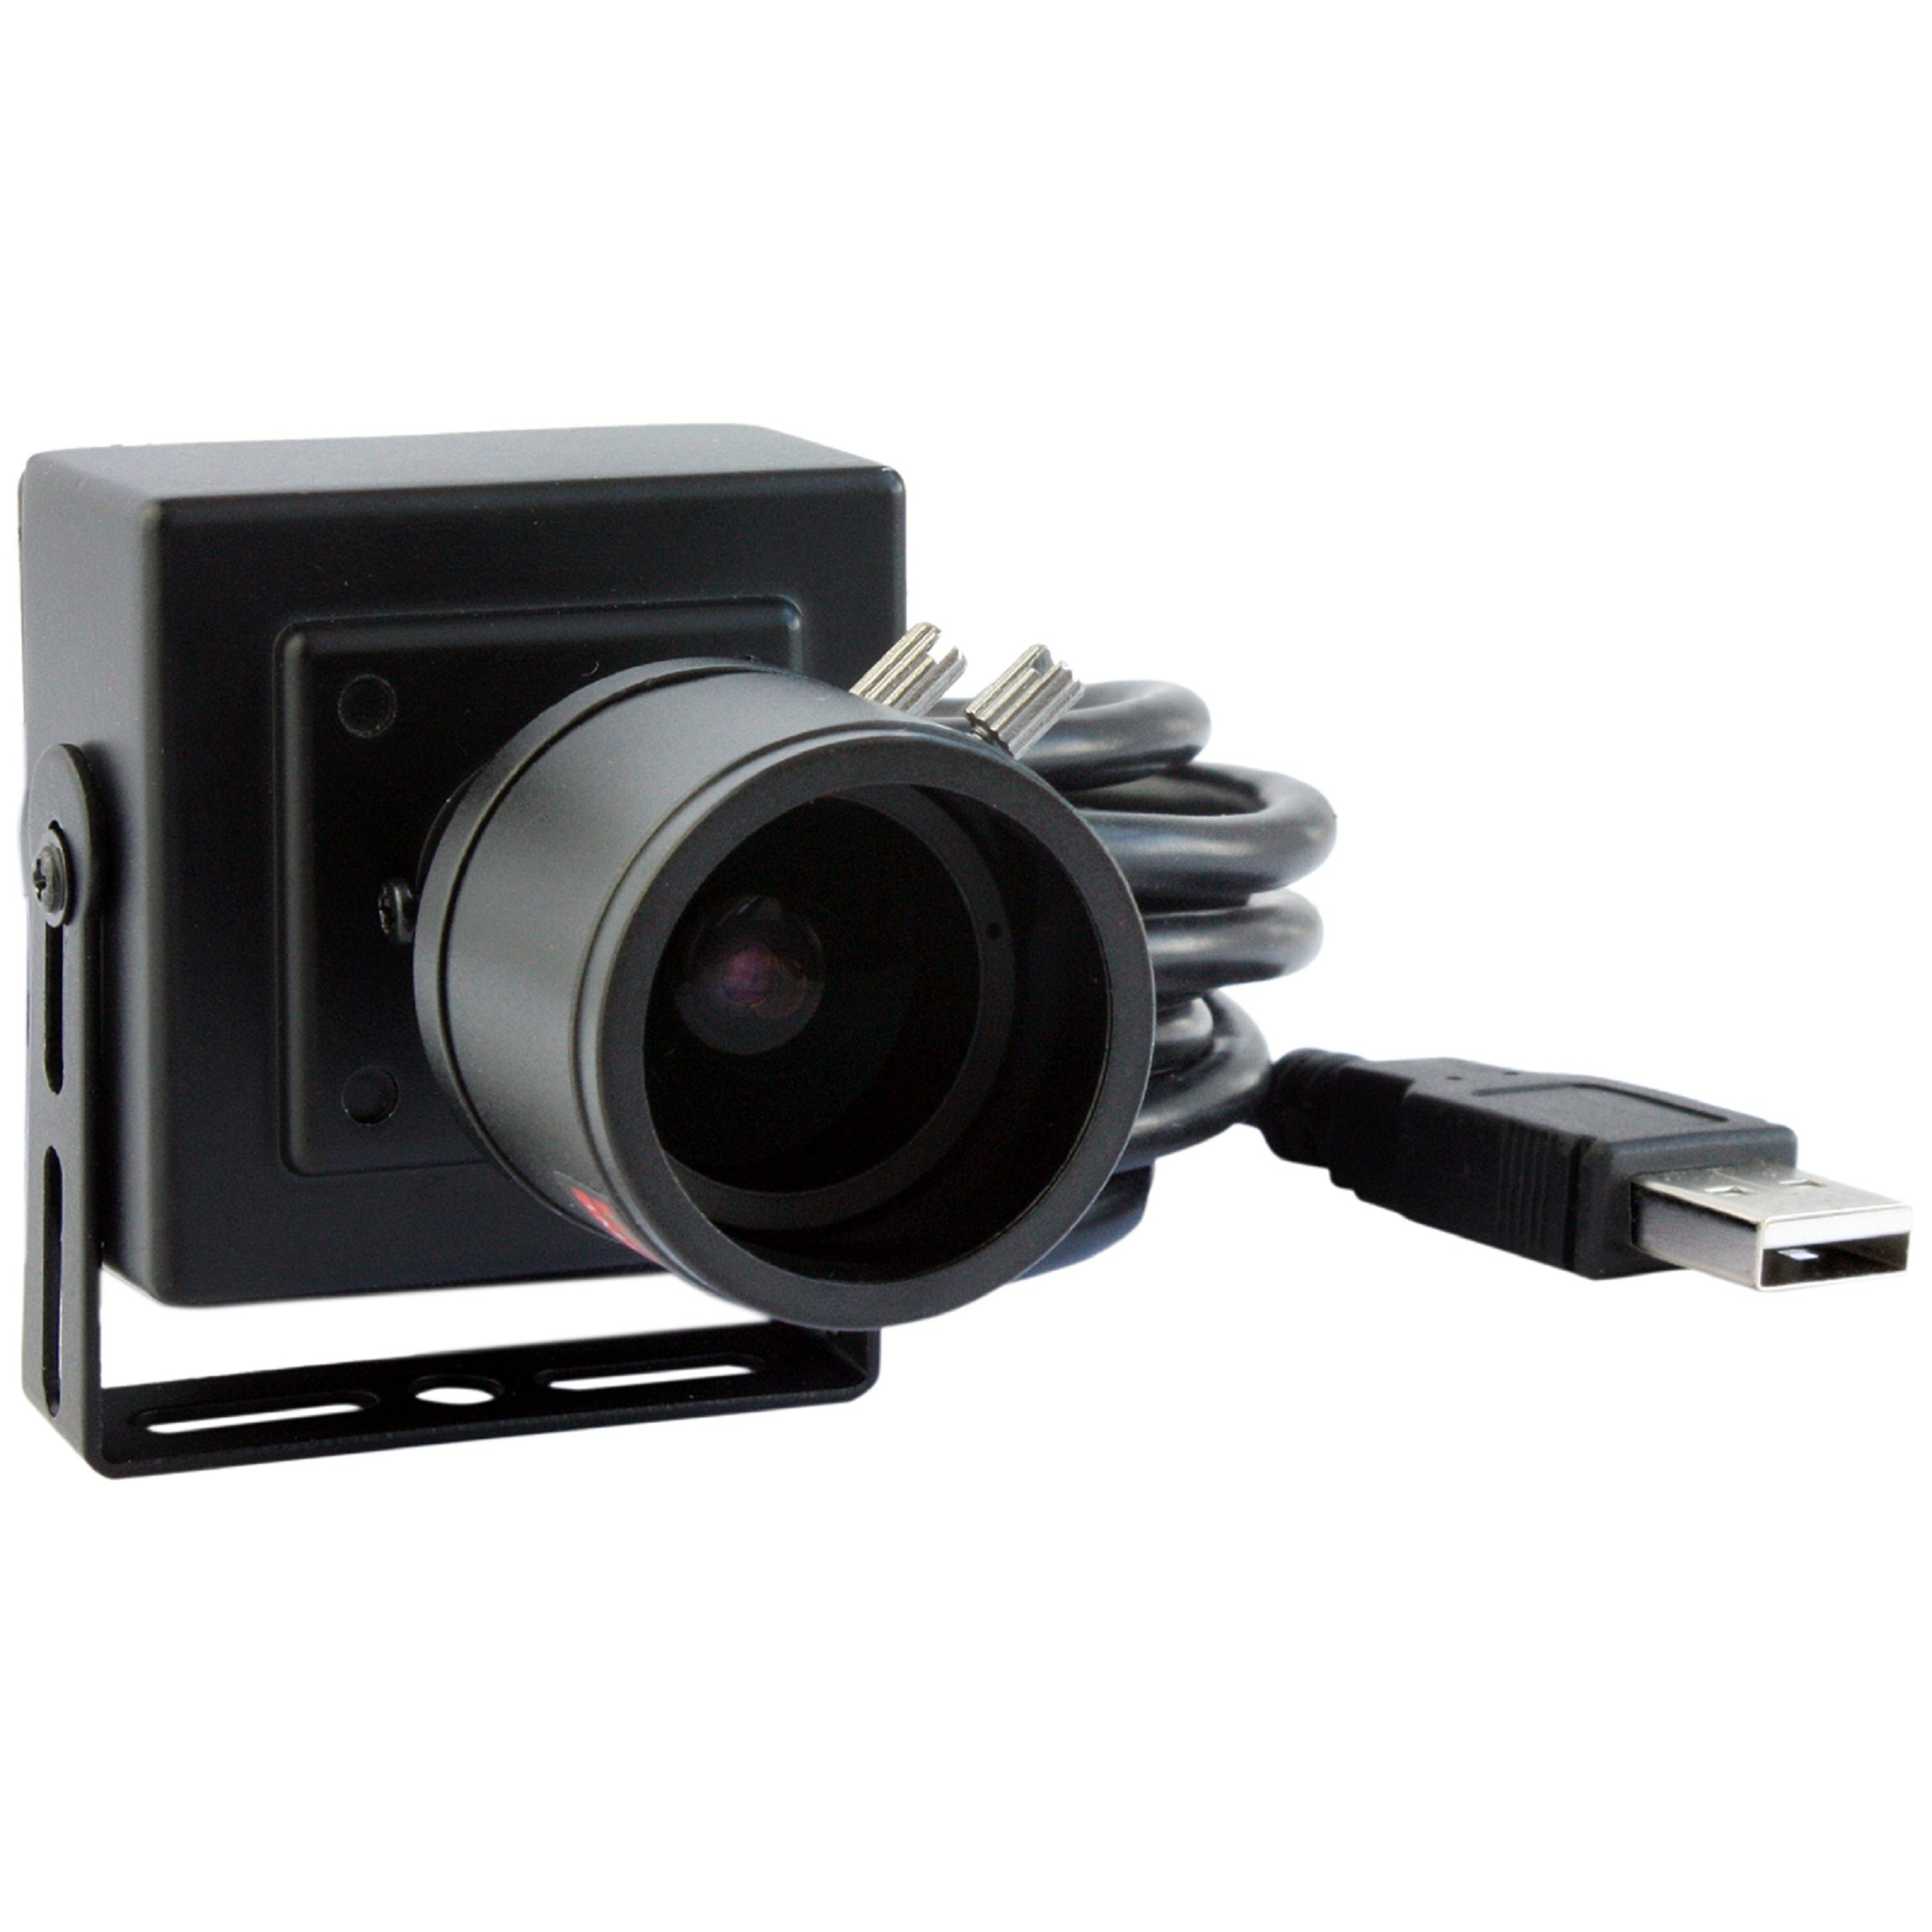 ELP 2.8-12mm Lens Varifocal Mini Box USB camera 1.3megapixel for Linux Android Windows System by ELP